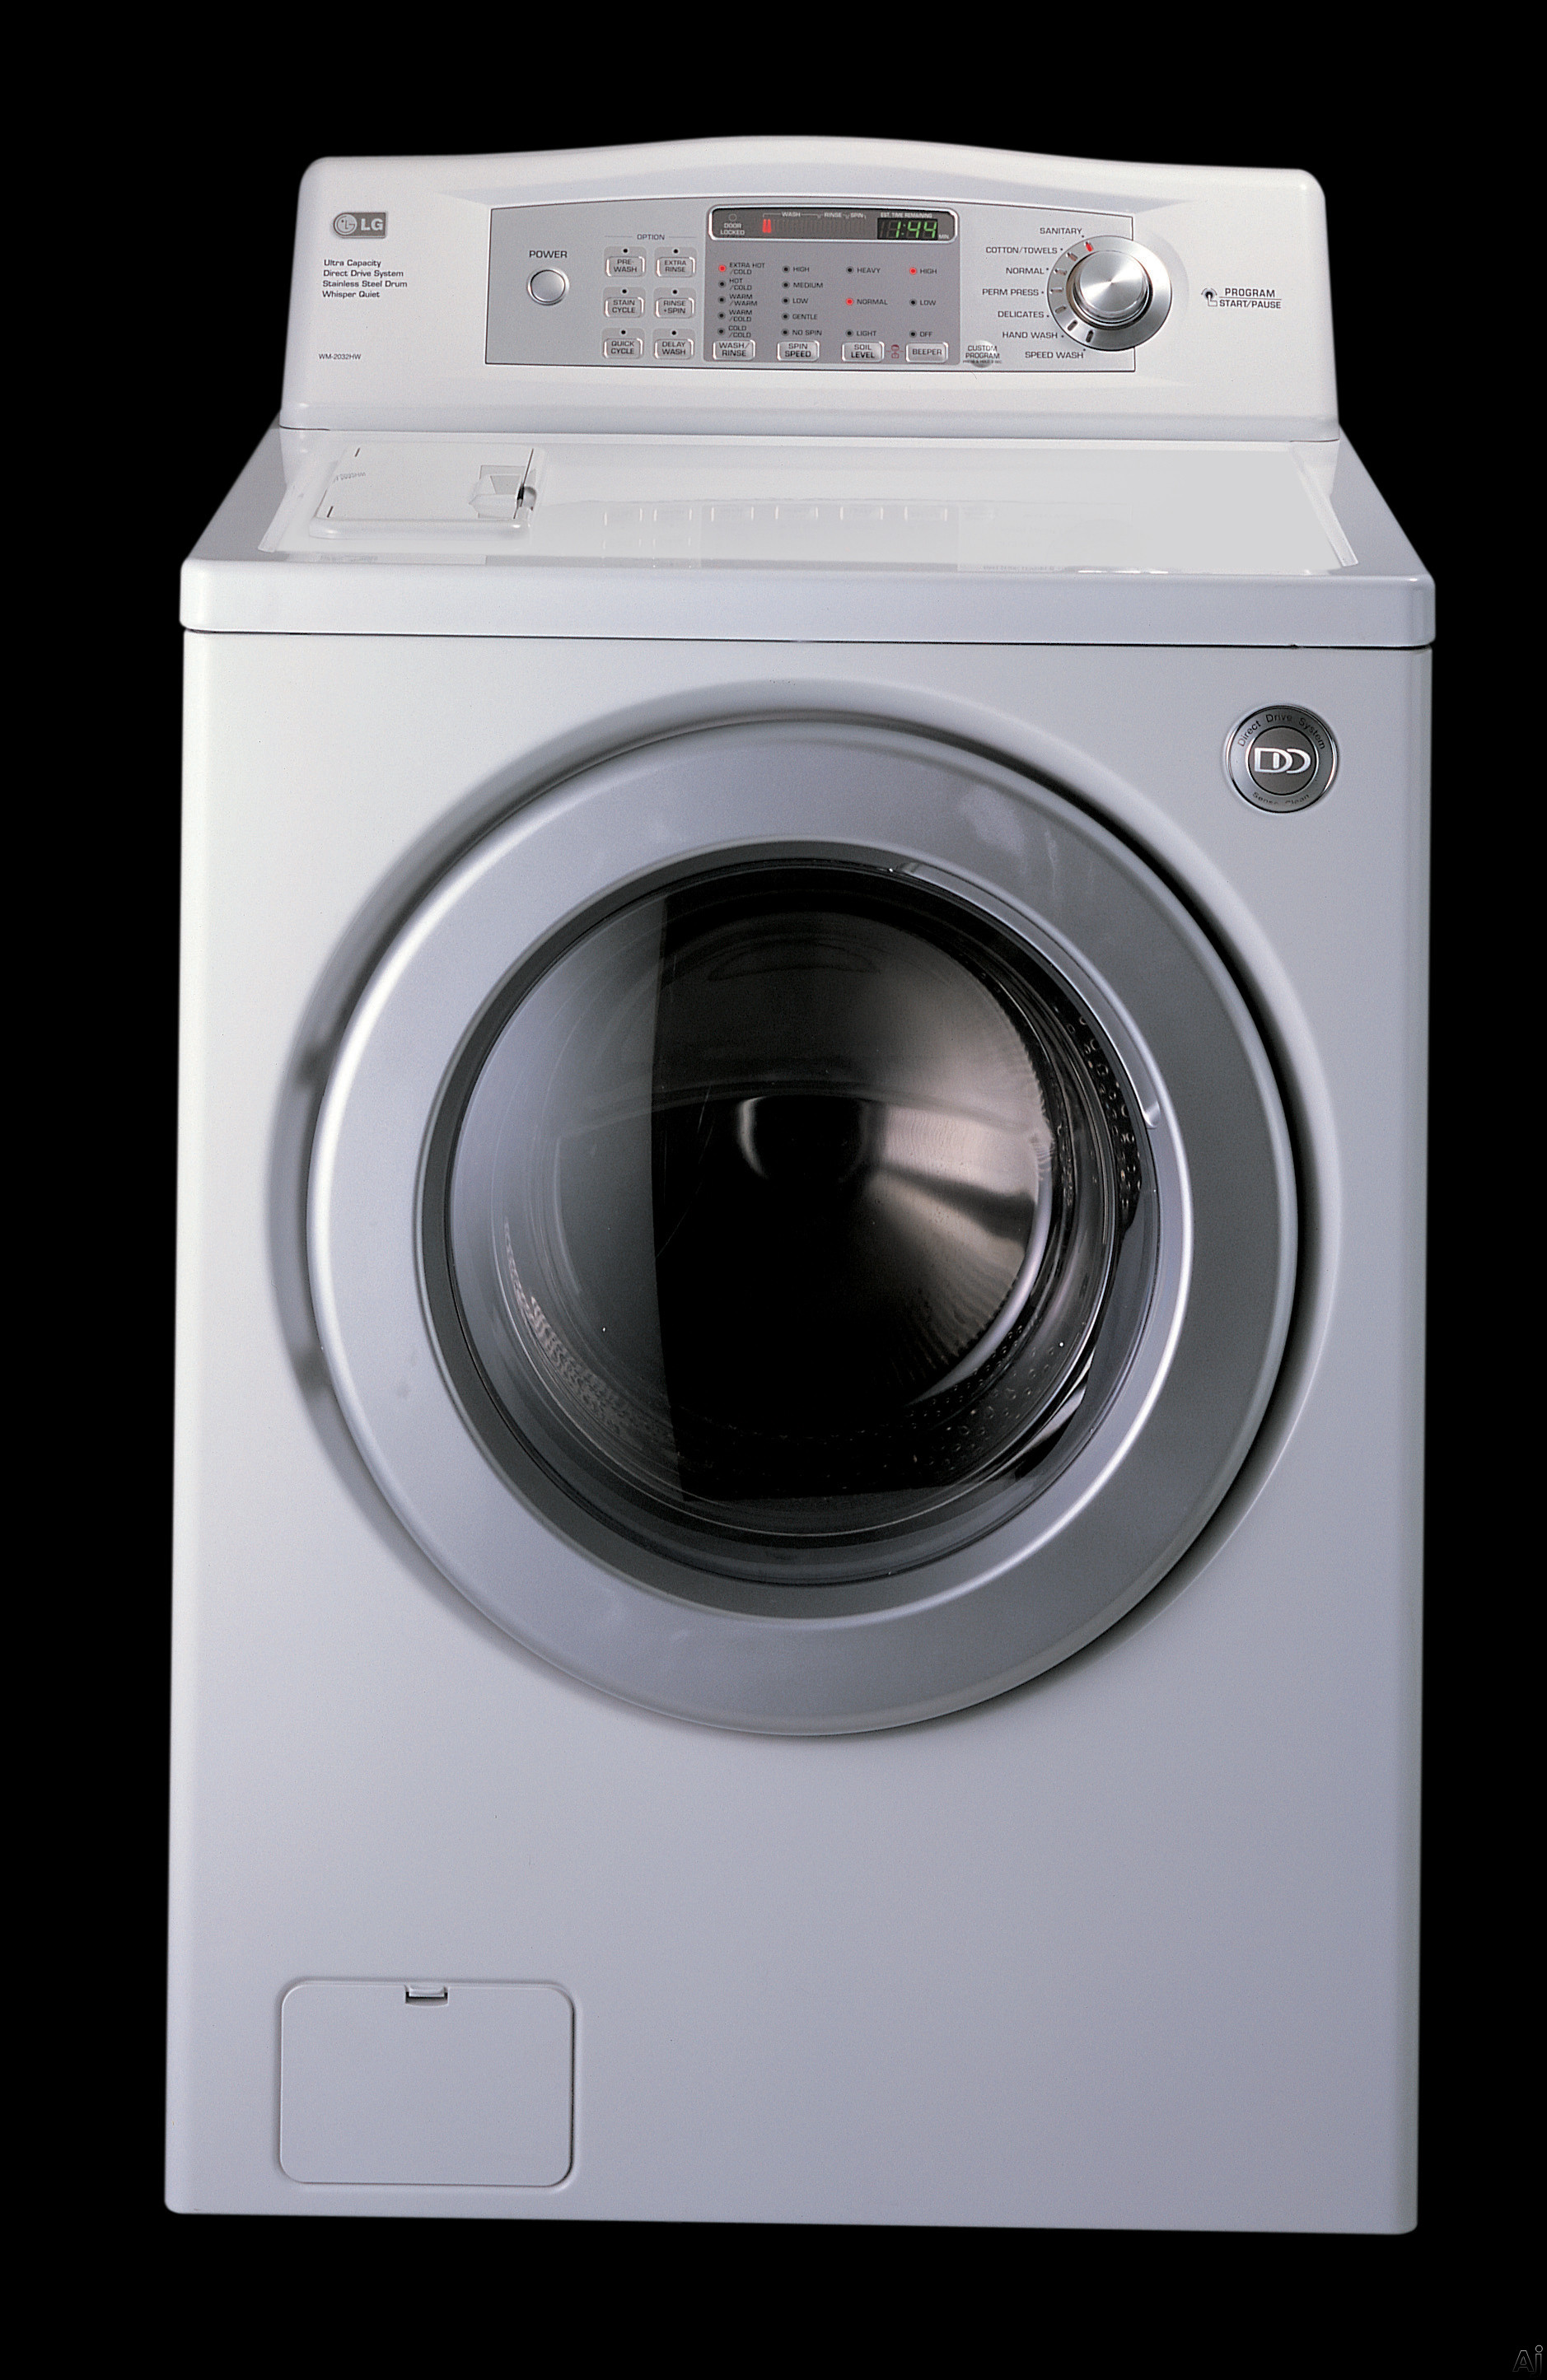 Lg Wm2032hw 27 Quot Front Load Washer W 3 72 Cu Ft Capacity